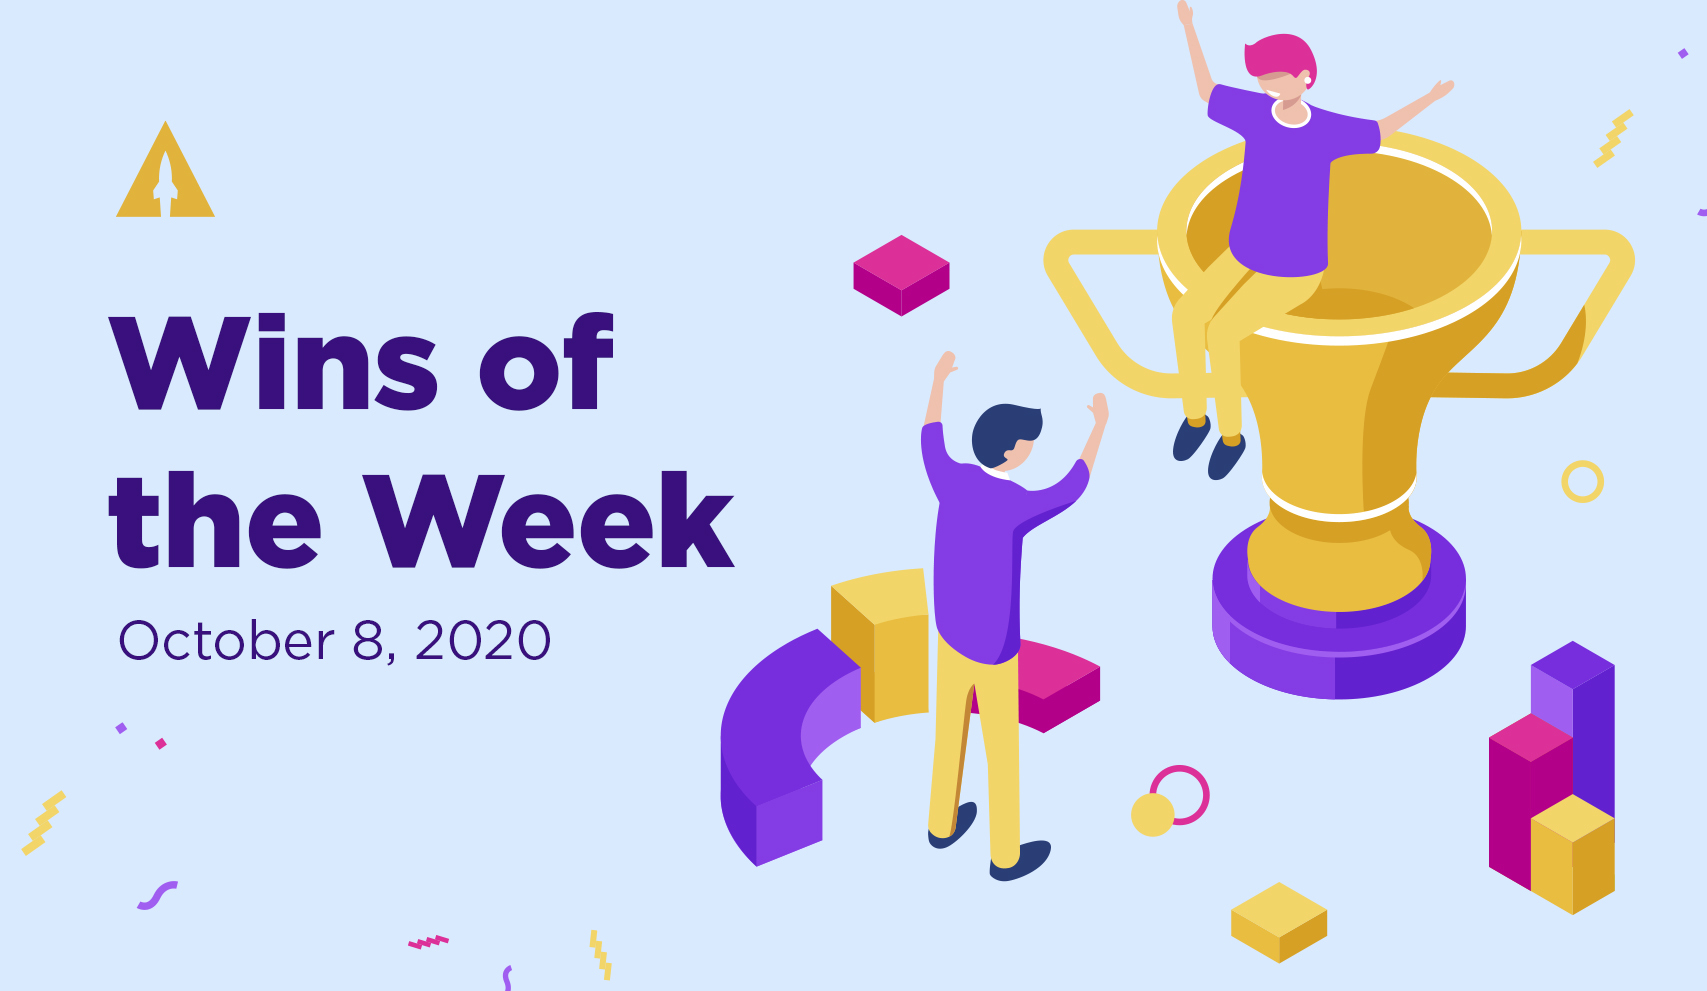 Wins of the Week: October 8, 2020